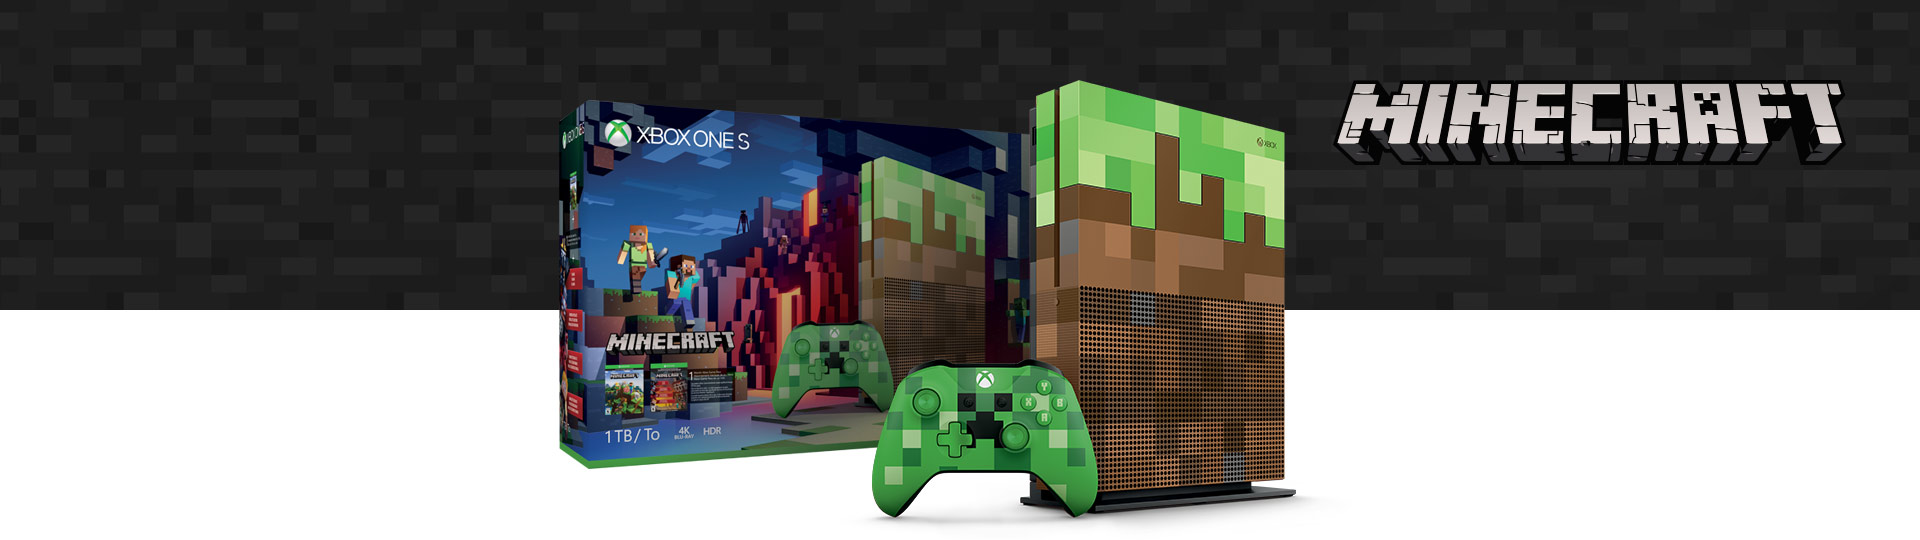 Xbox One S Minecraft Limited Edition Bundle (1 TB)